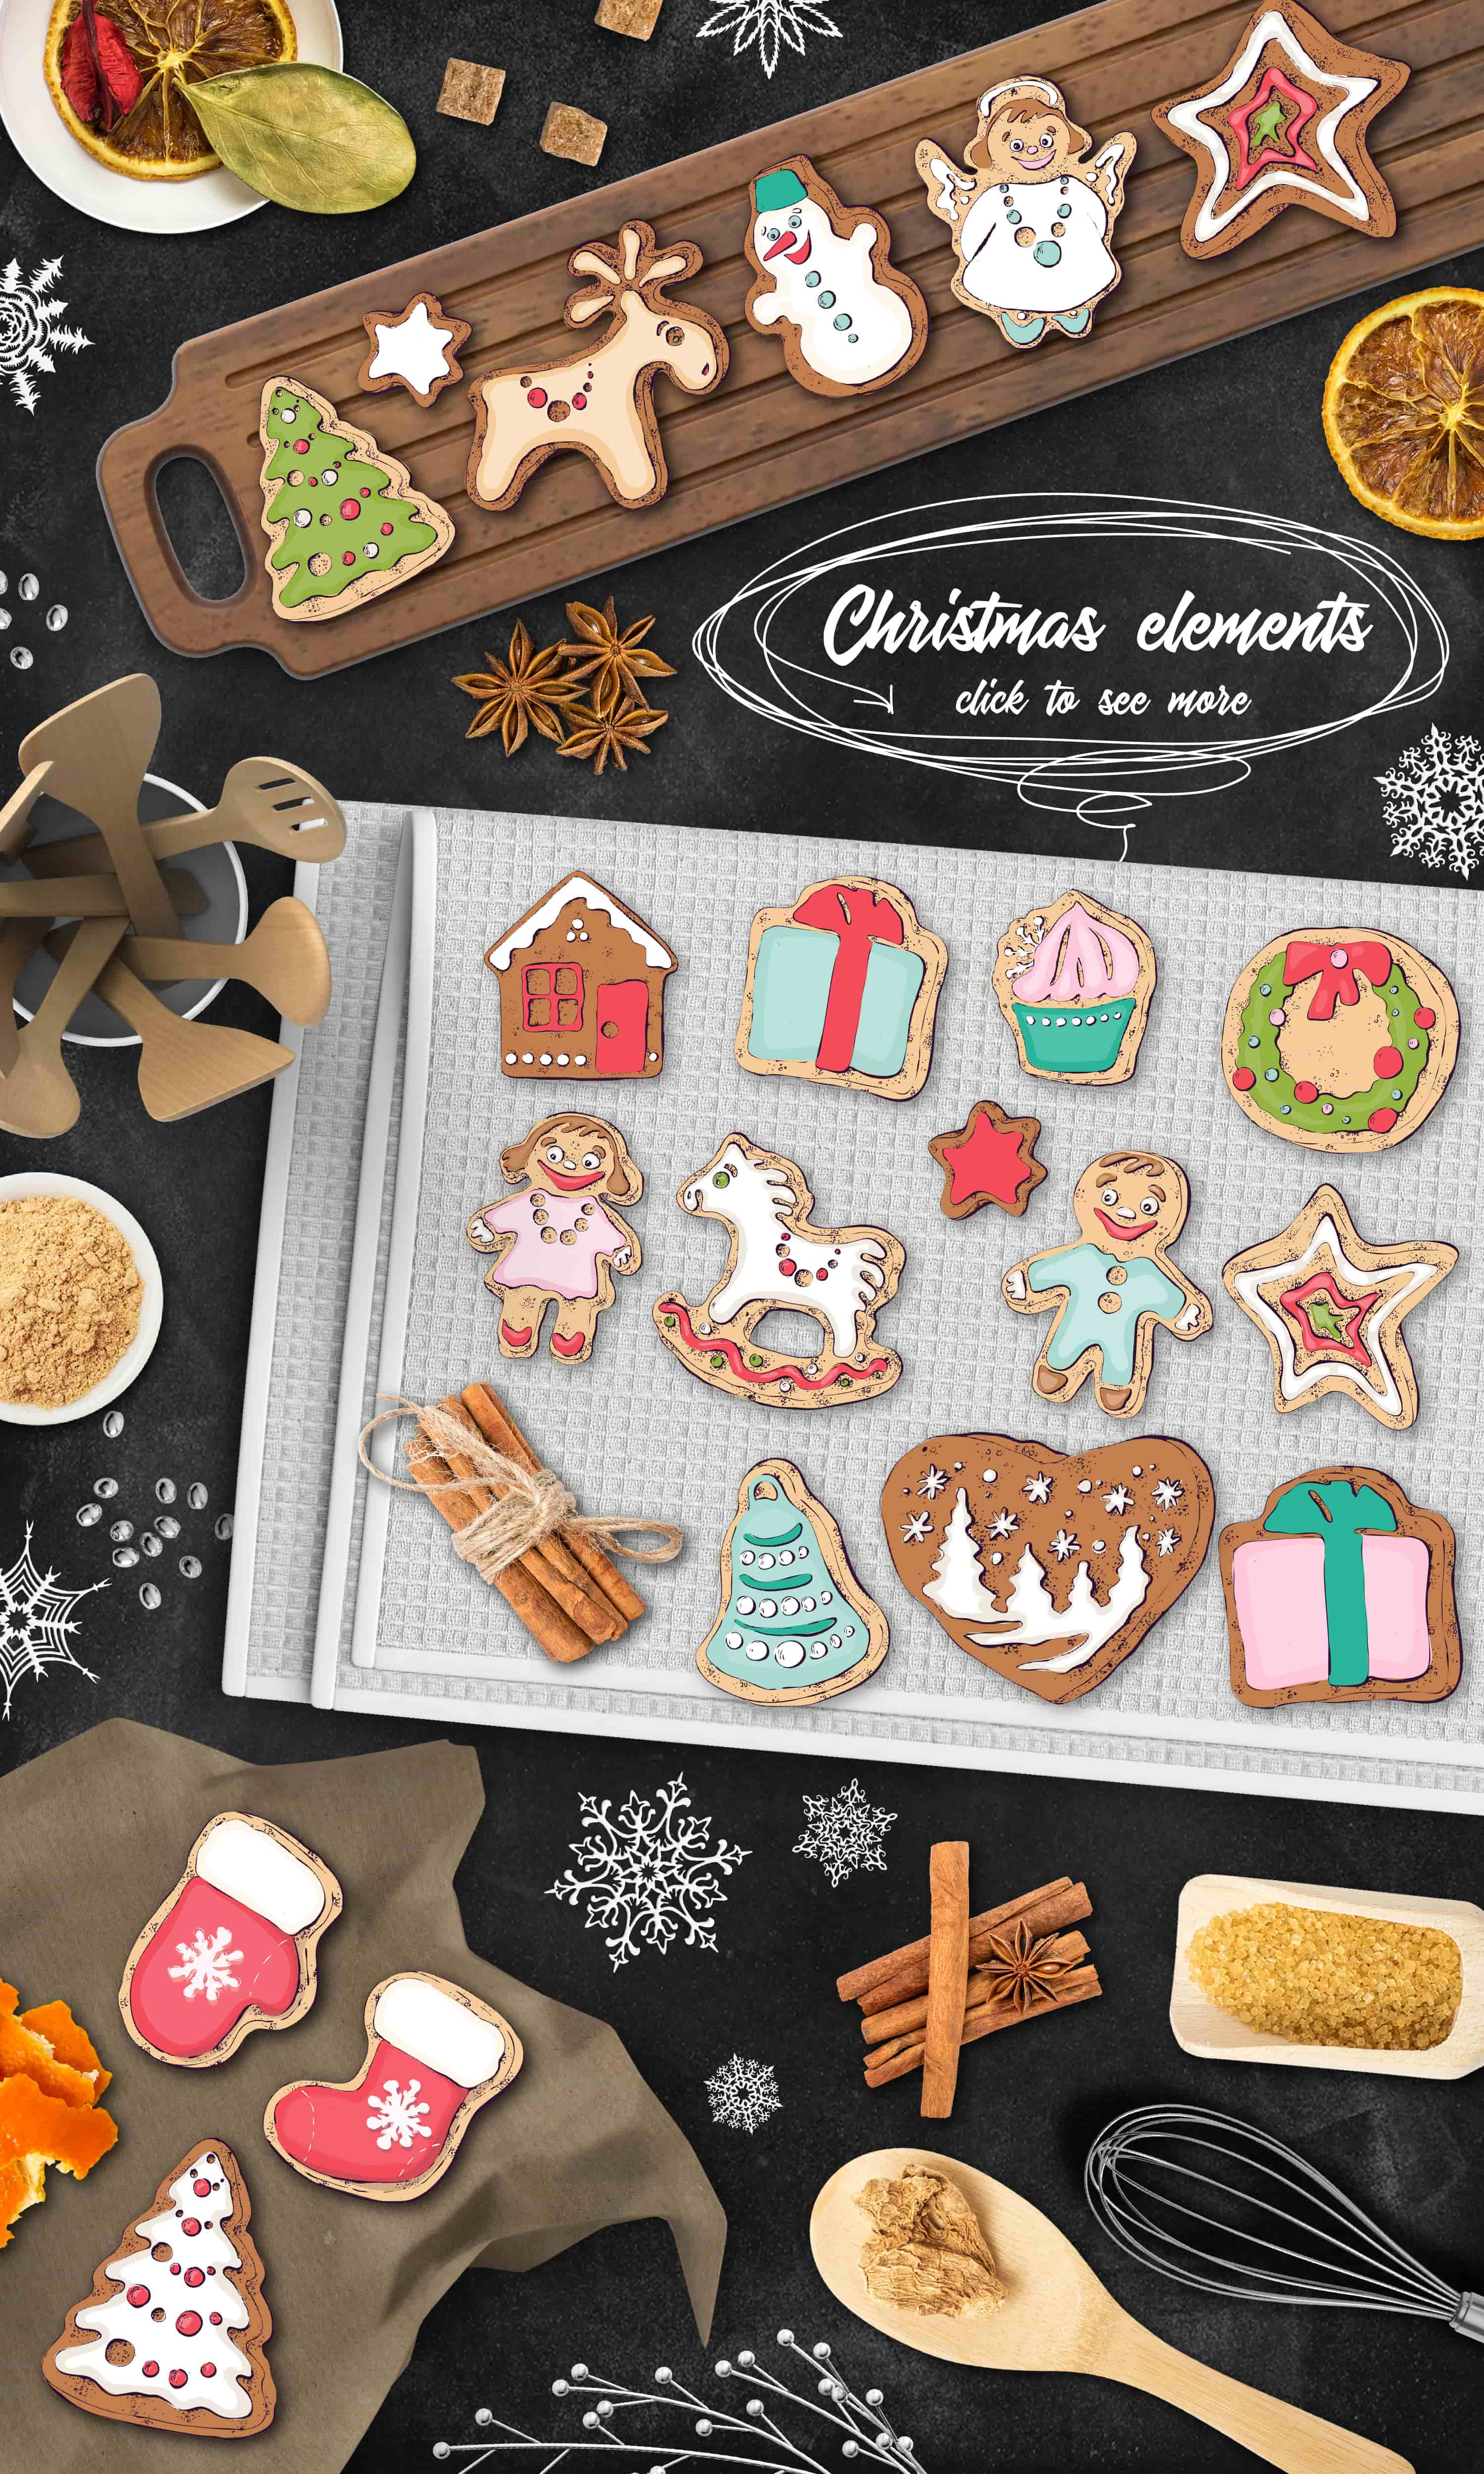 Merry Christmas Images: patterns, cards and items - 4 items2 min